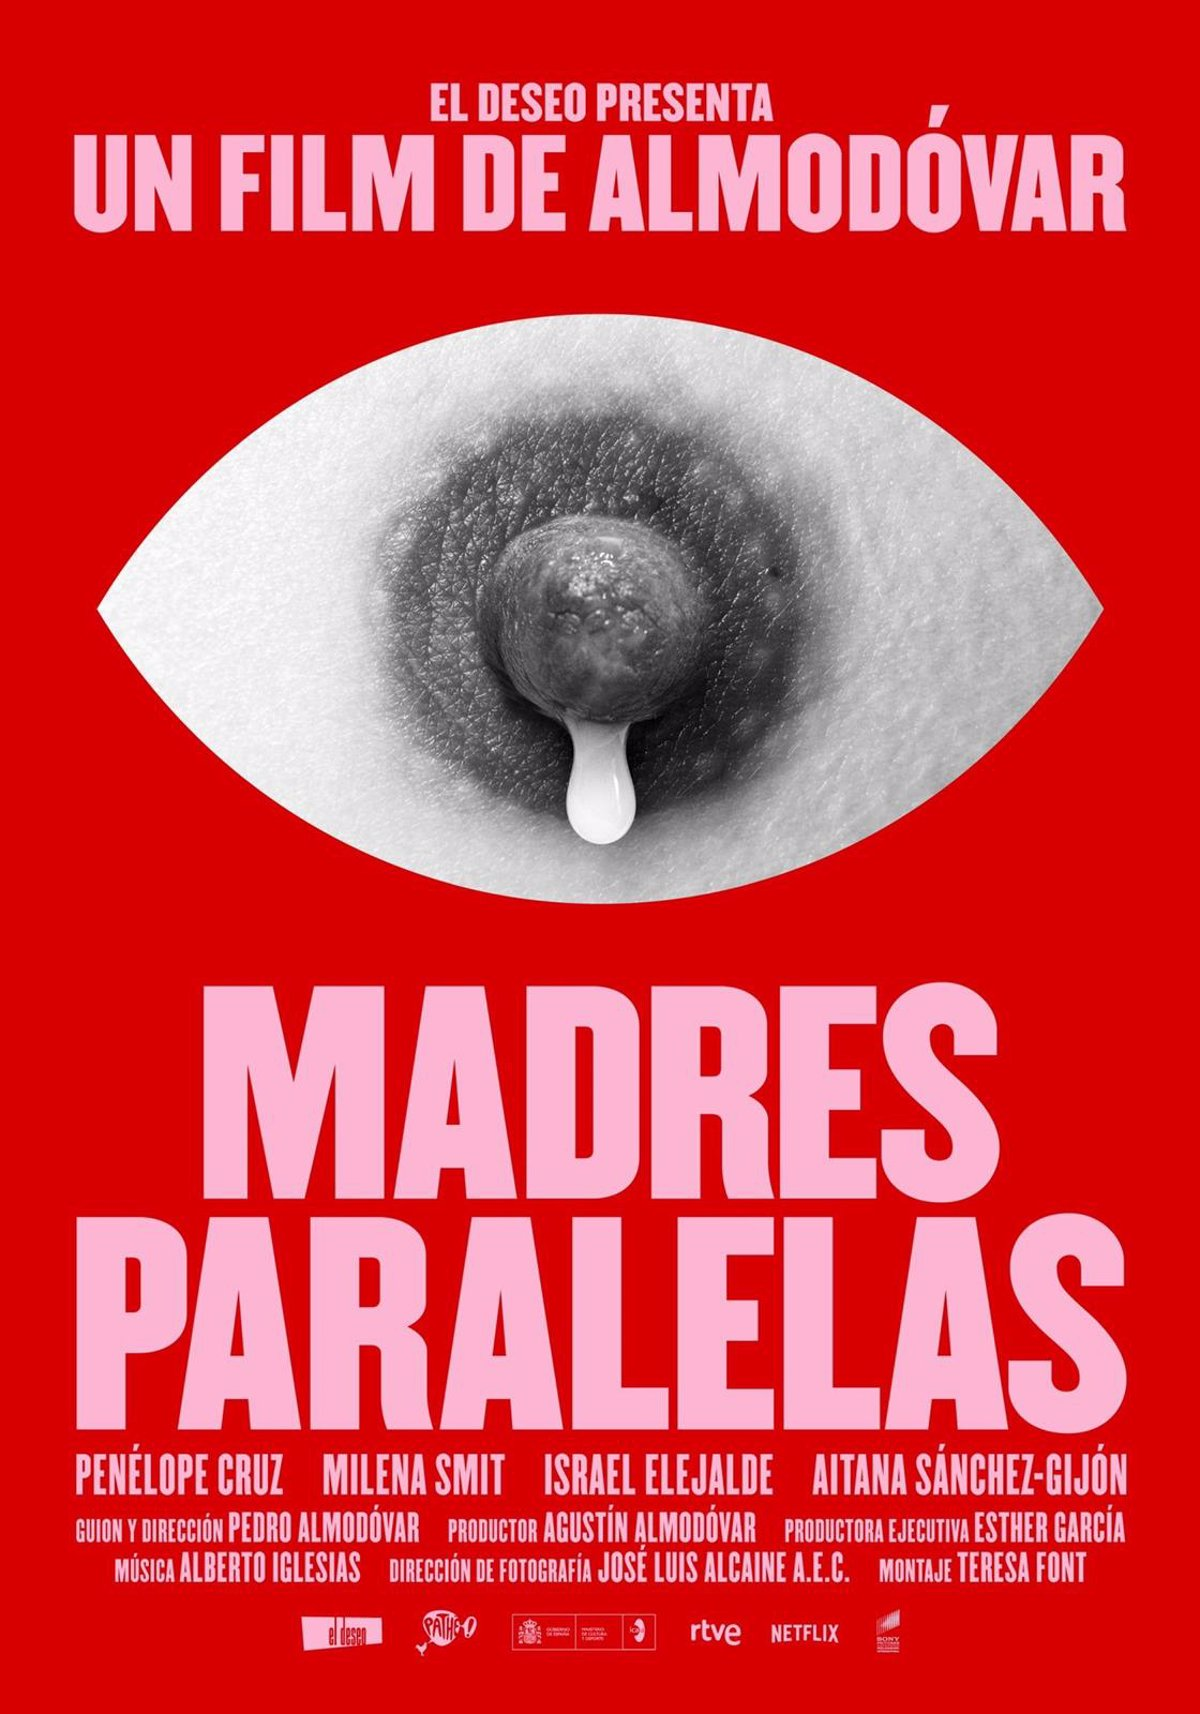 The first poster of 'Parallel Mothers' by Almodóvar is presented, which will premiere in Spain on September 10